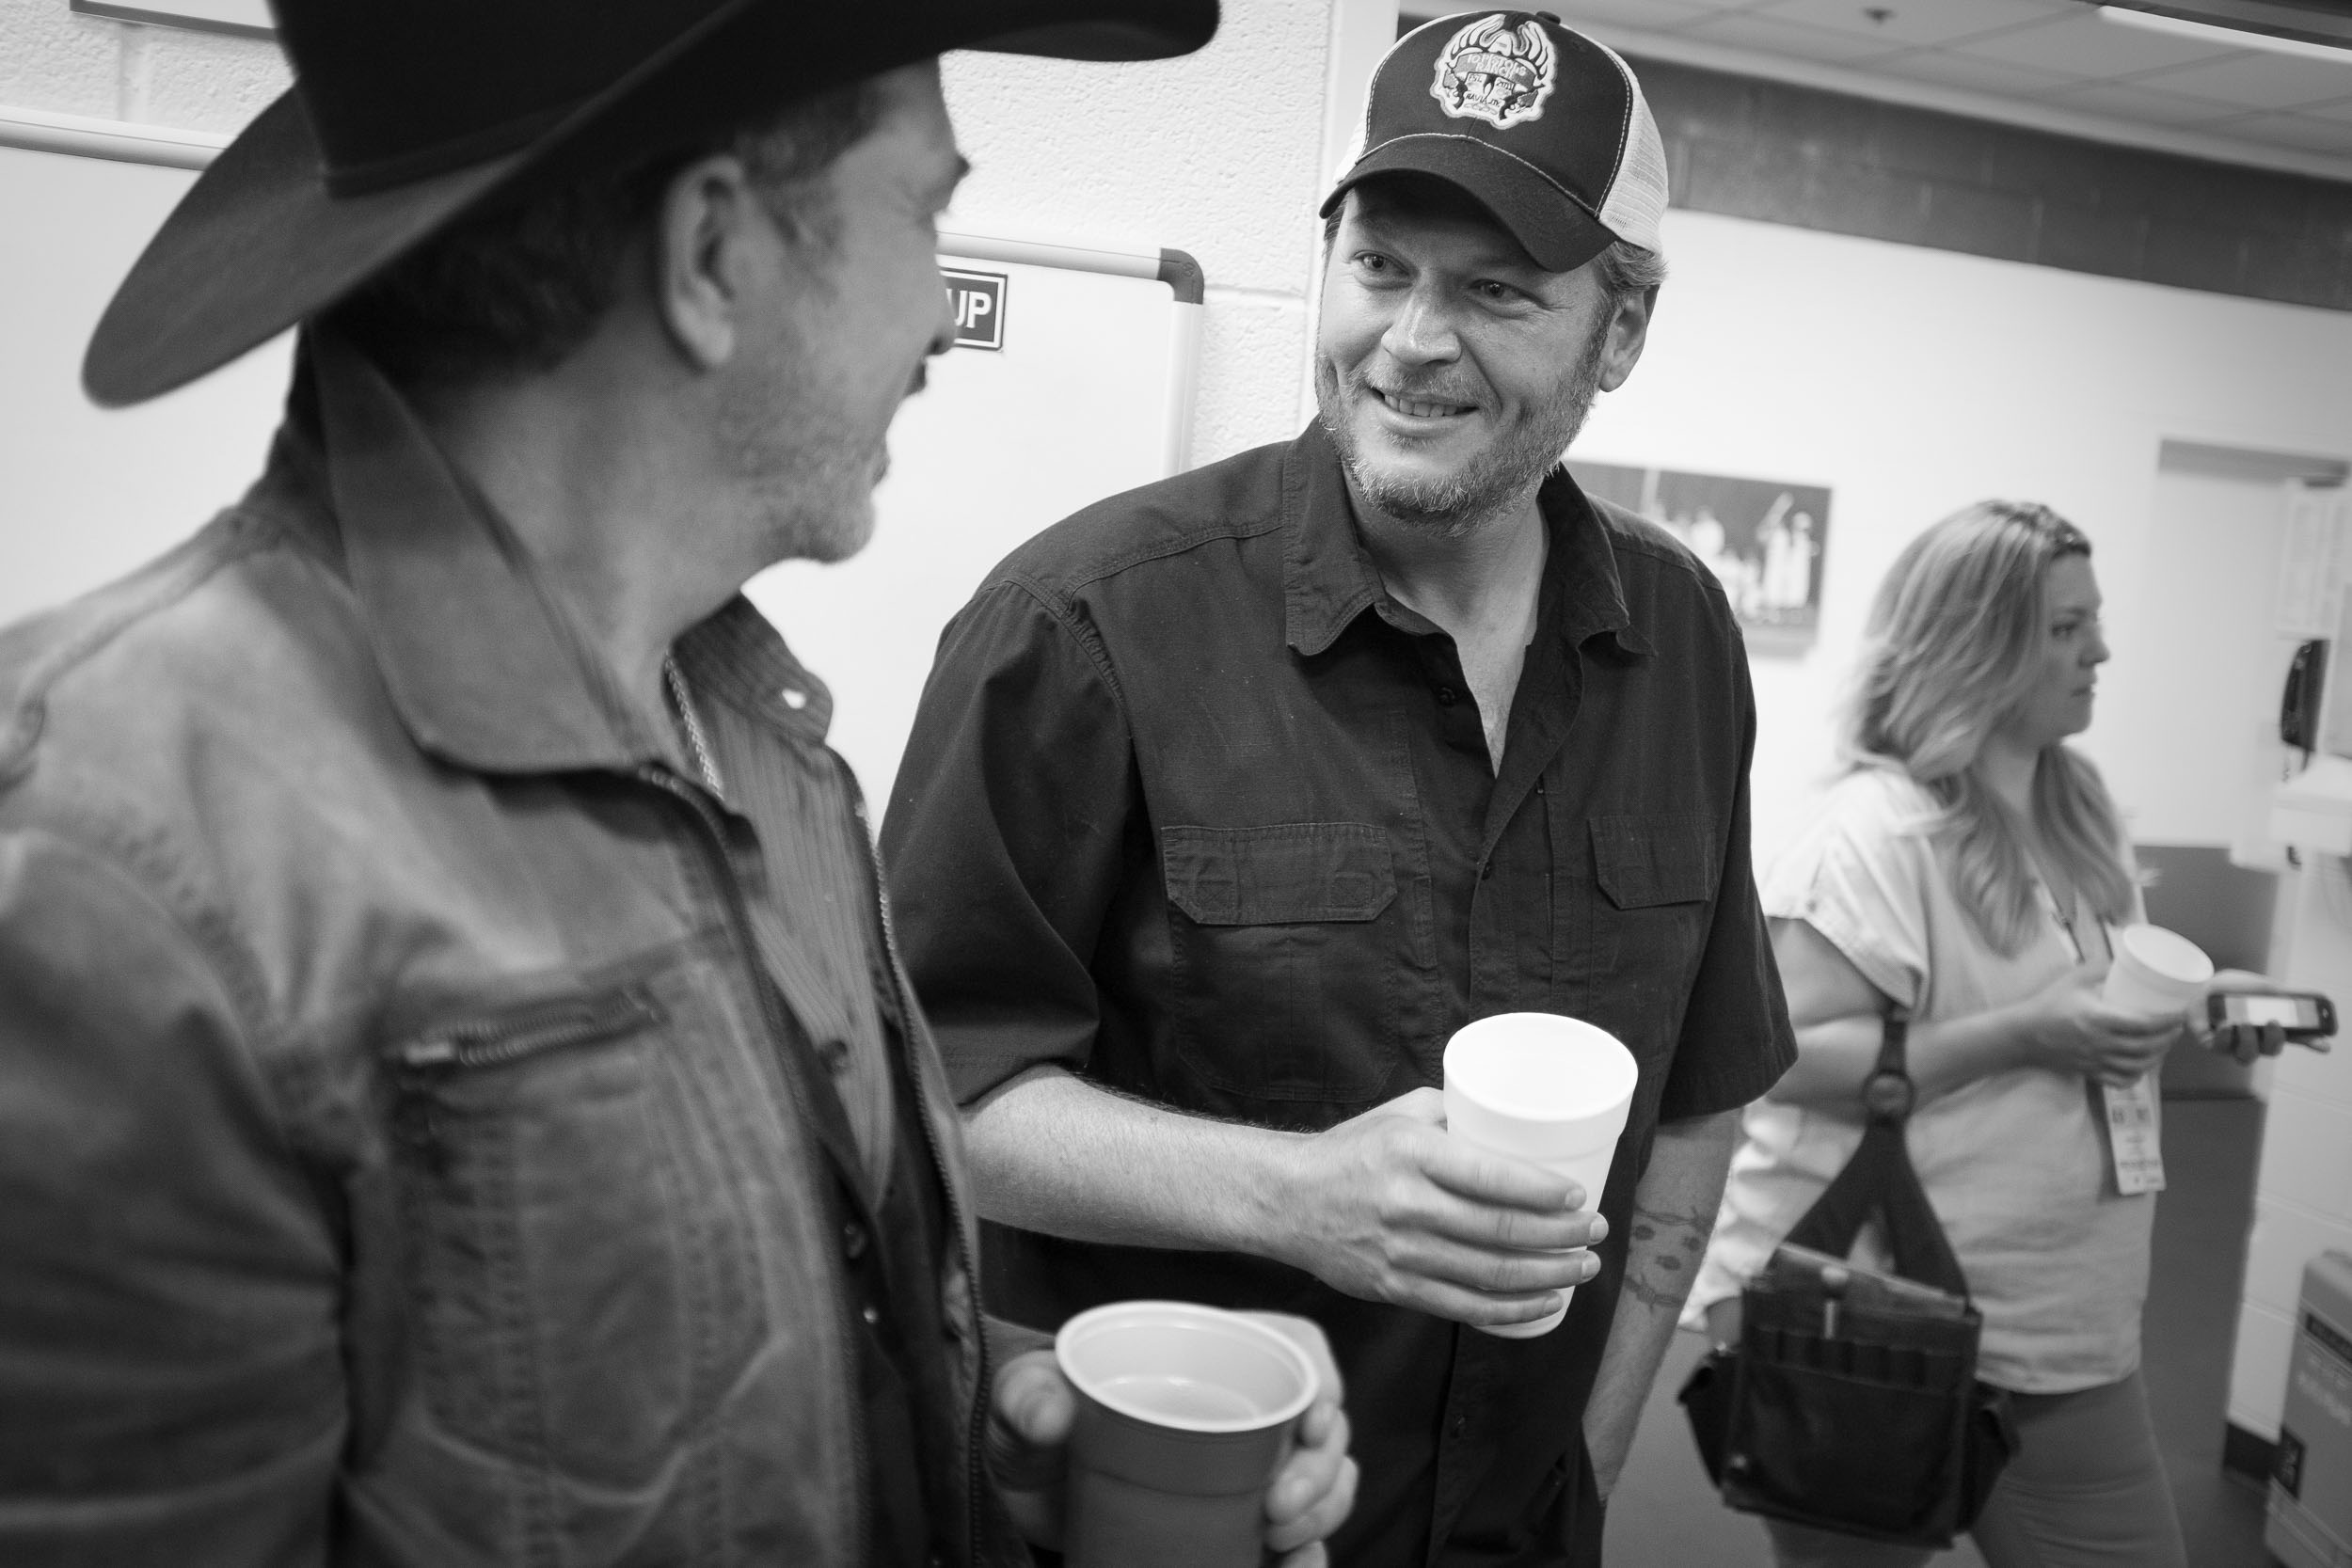 Florida Photography | Kix Brooks & Blake Shelton - Music and Celebrity | Steven Martine